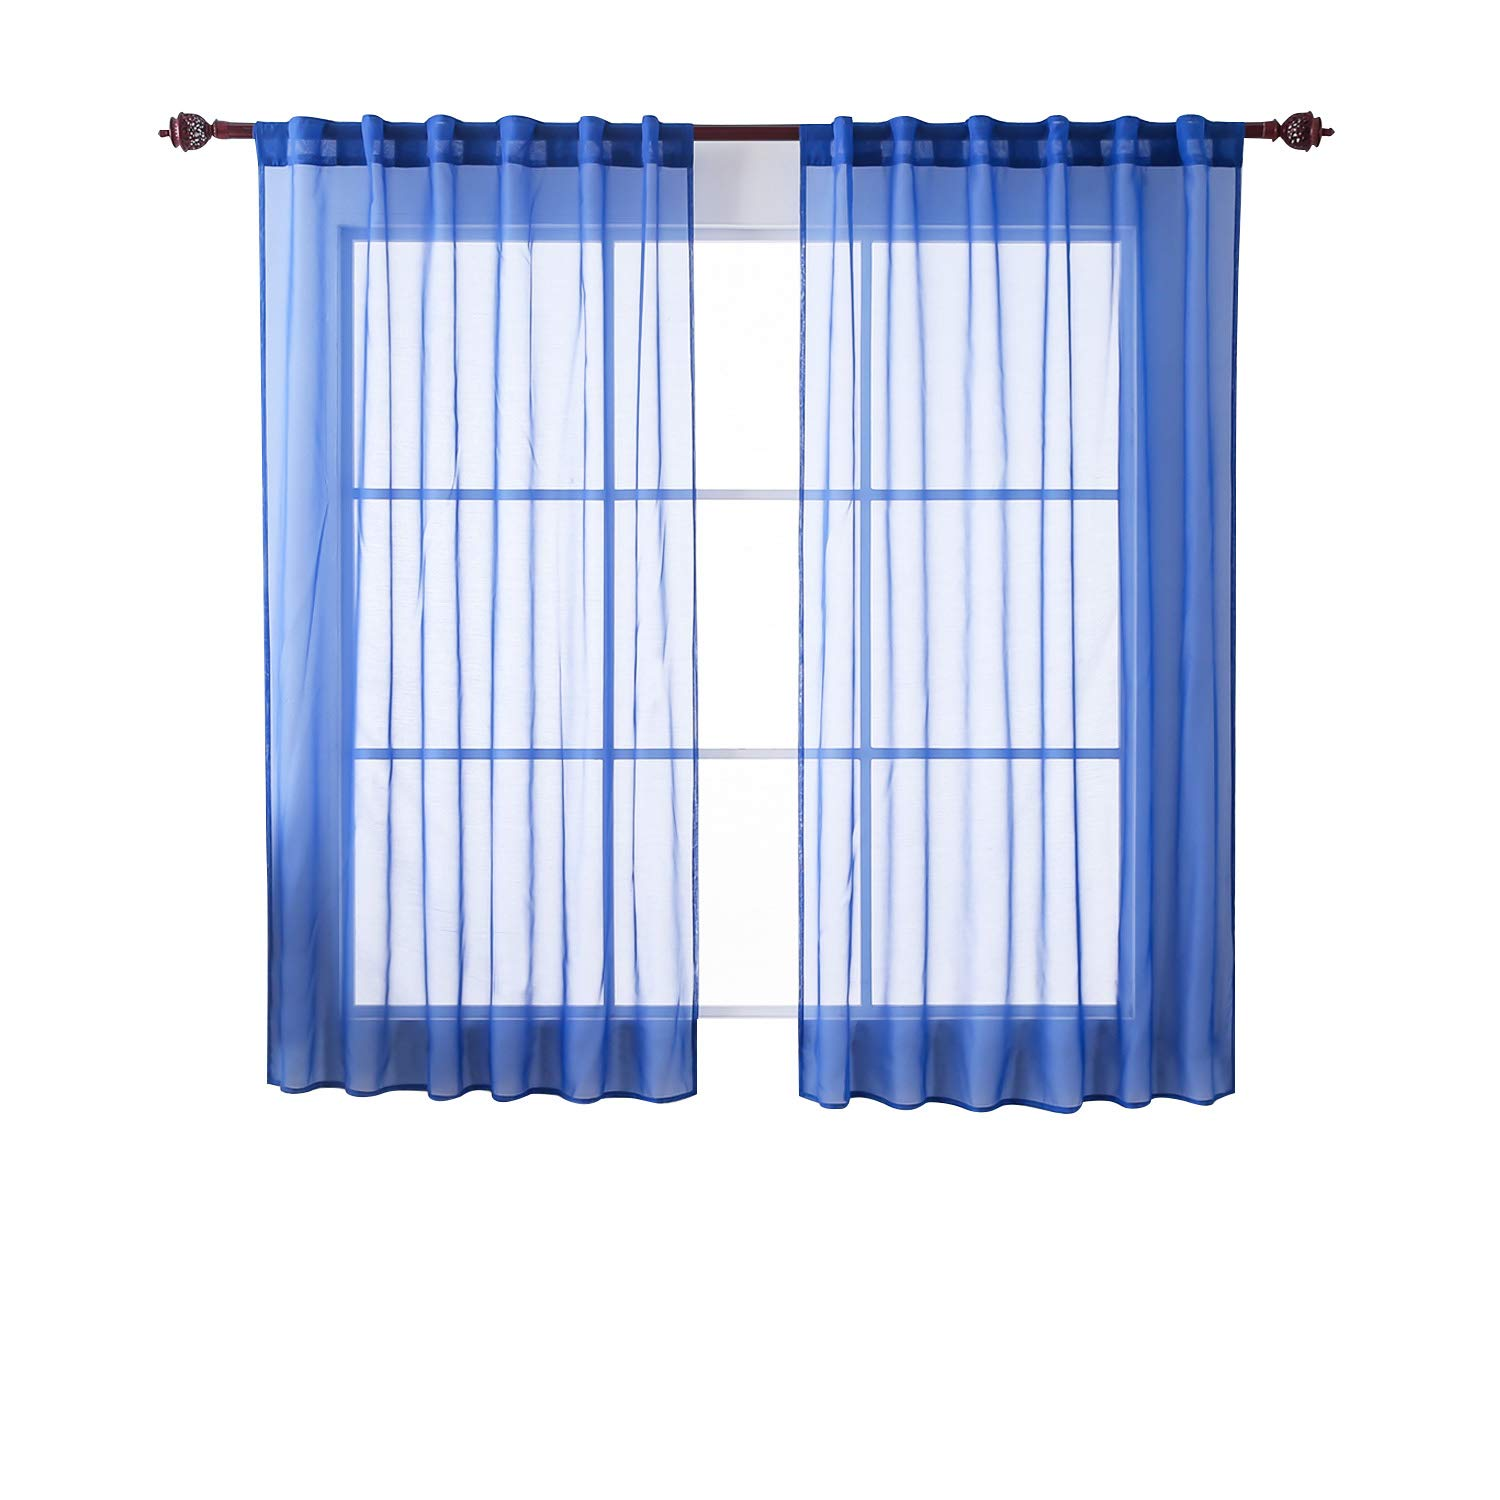 Deconovo Solid Color Rod Pocket and Back Tab Curtains Sheer Curtains Voile Curtains Window Curtains for Girls Room 52 W x 63L 2 Panels